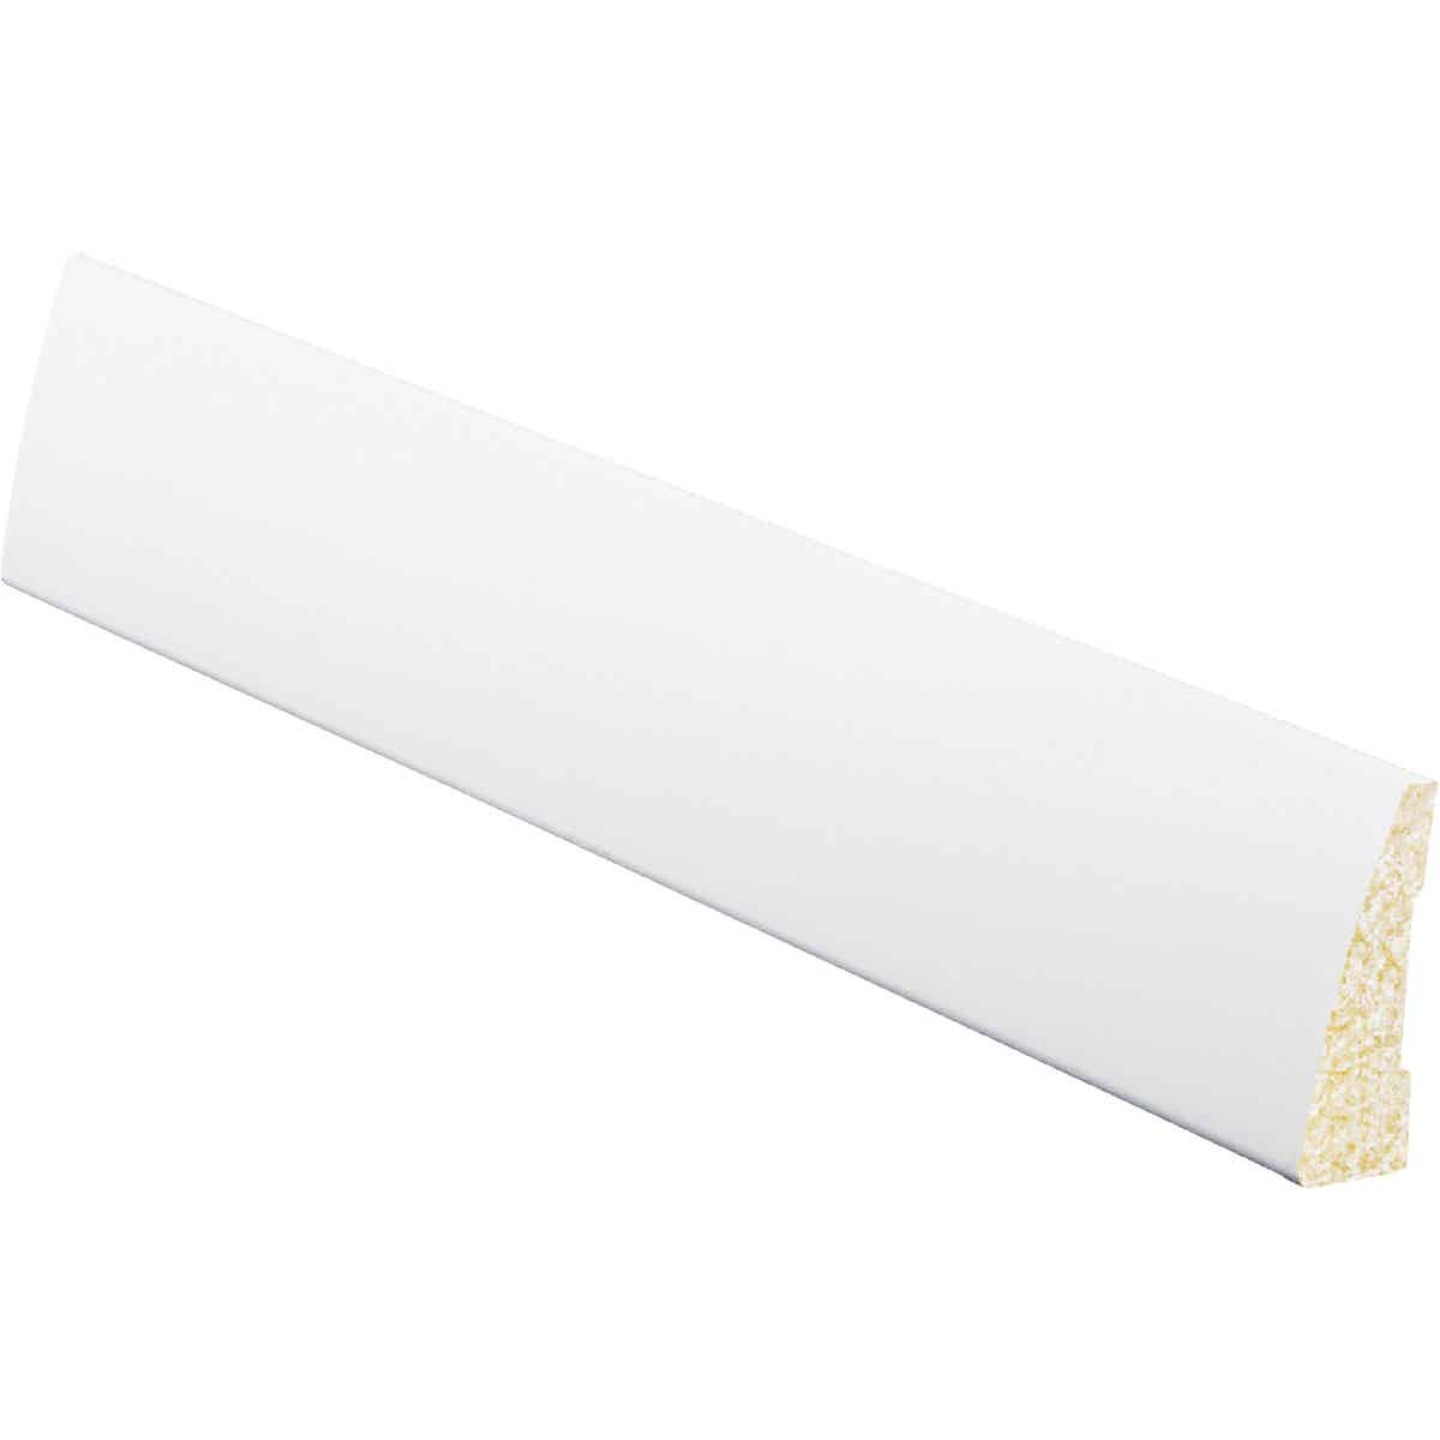 Inteplast Building Products 5/8 In. W. x 2-1/4 In. H. x 7 Ft. L. Crystal White Polystyrene Ranch Casing Image 1